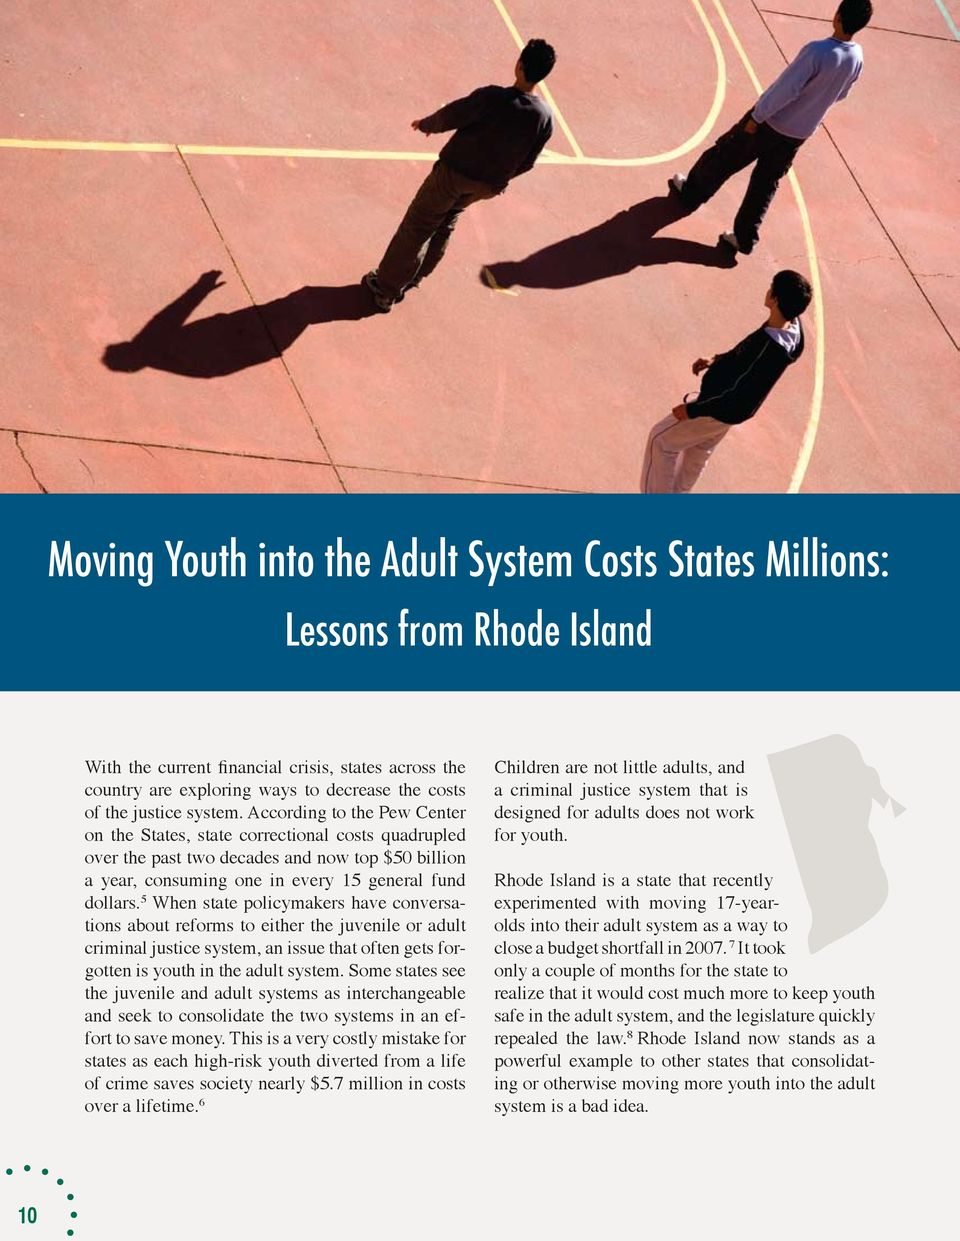 5 When state policymakers have conversations about reforms to either the juvenile or adult criminal justice system, an issue that often gets forgotten is youth in the adult system.